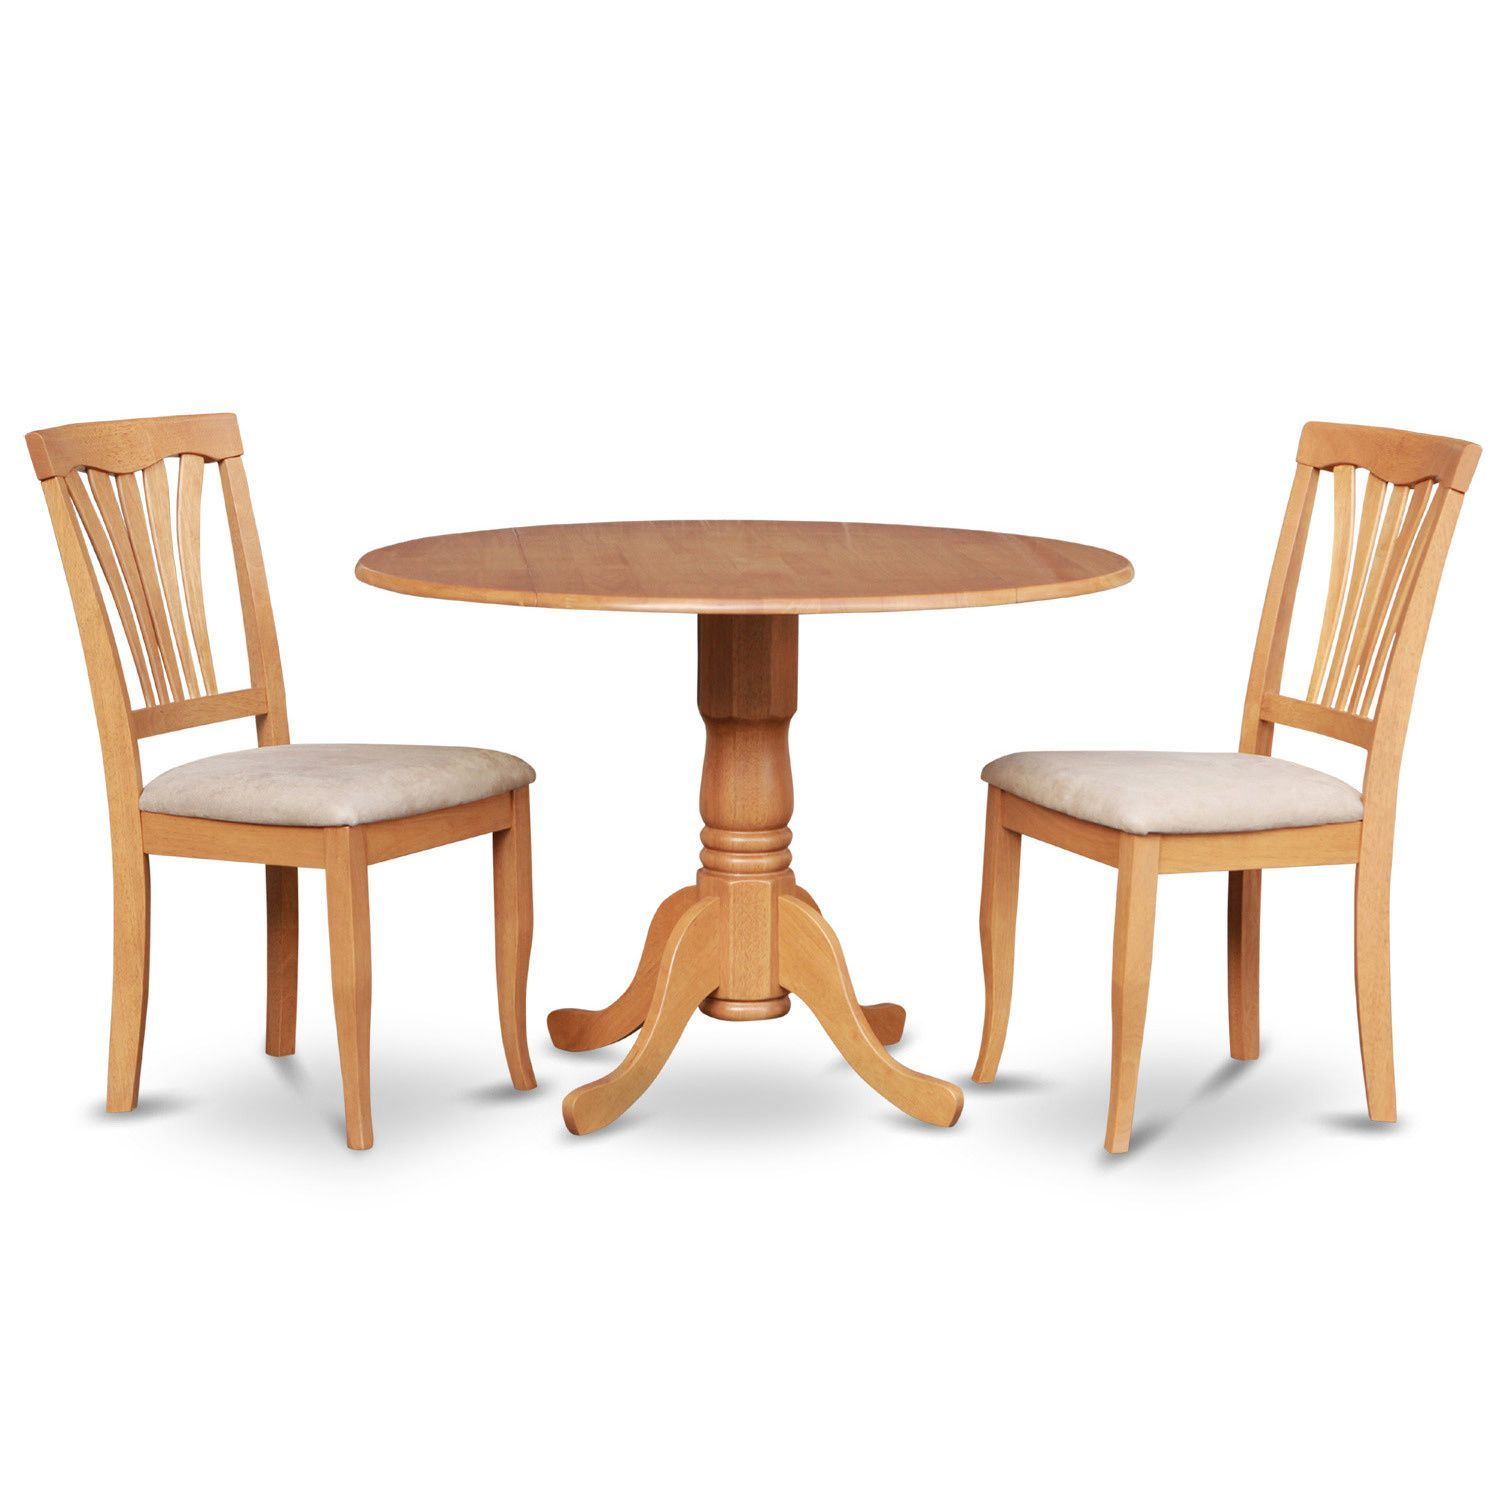 Small round kitchen table  Oak Small Kitchen Table Plus  Dinette Chairs piece Dining Set